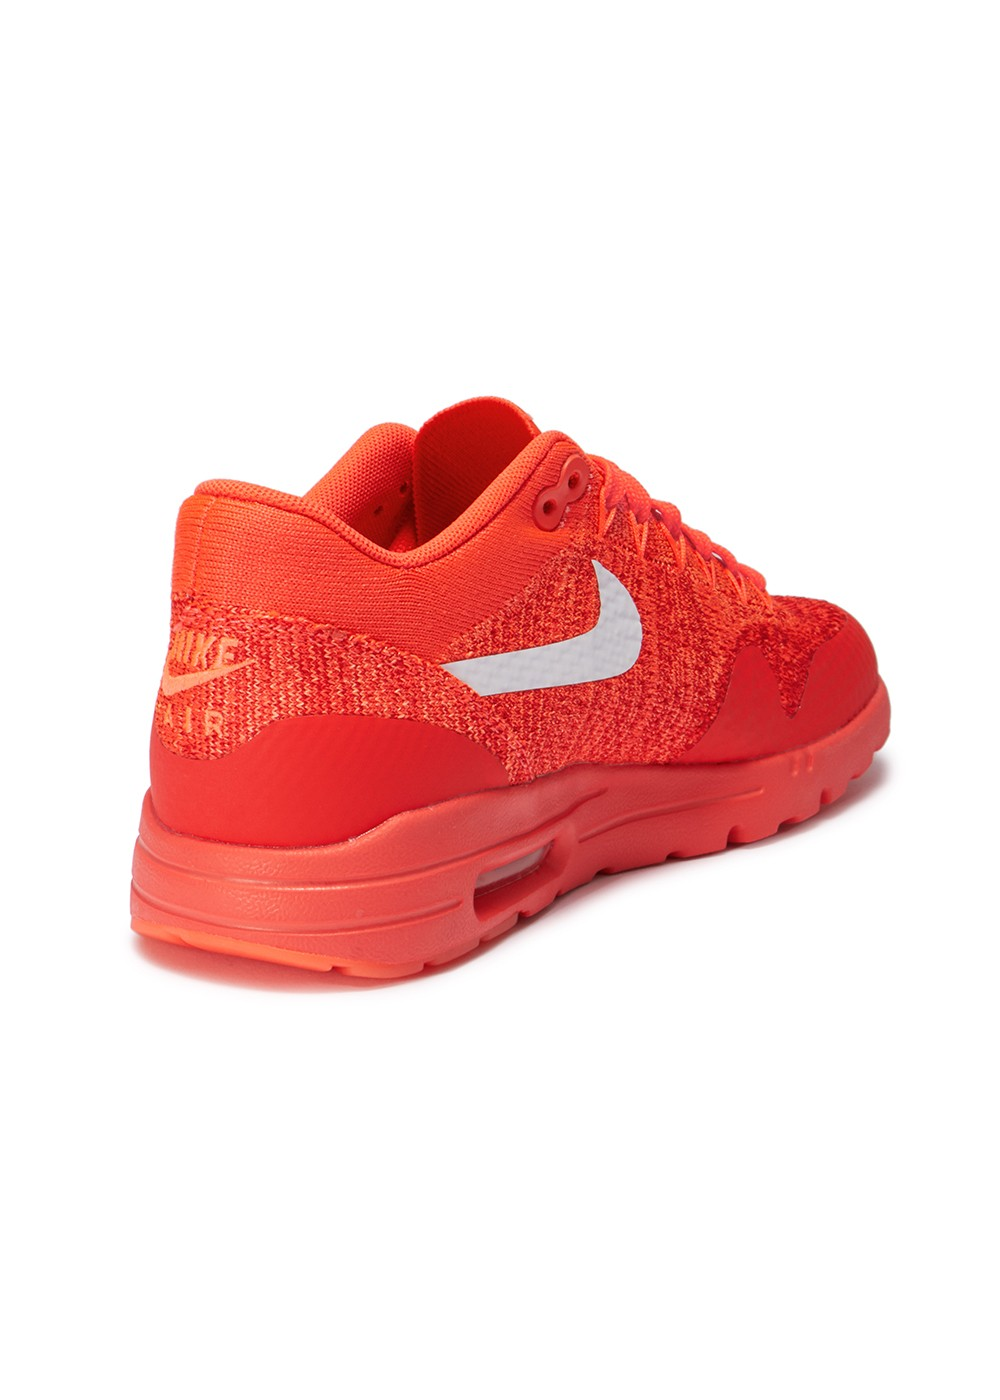 【NIKE】WMNS AIR MAX 1 ULTRA FLYKNIT 843387-601|ORANGE|スニーカー|Styles